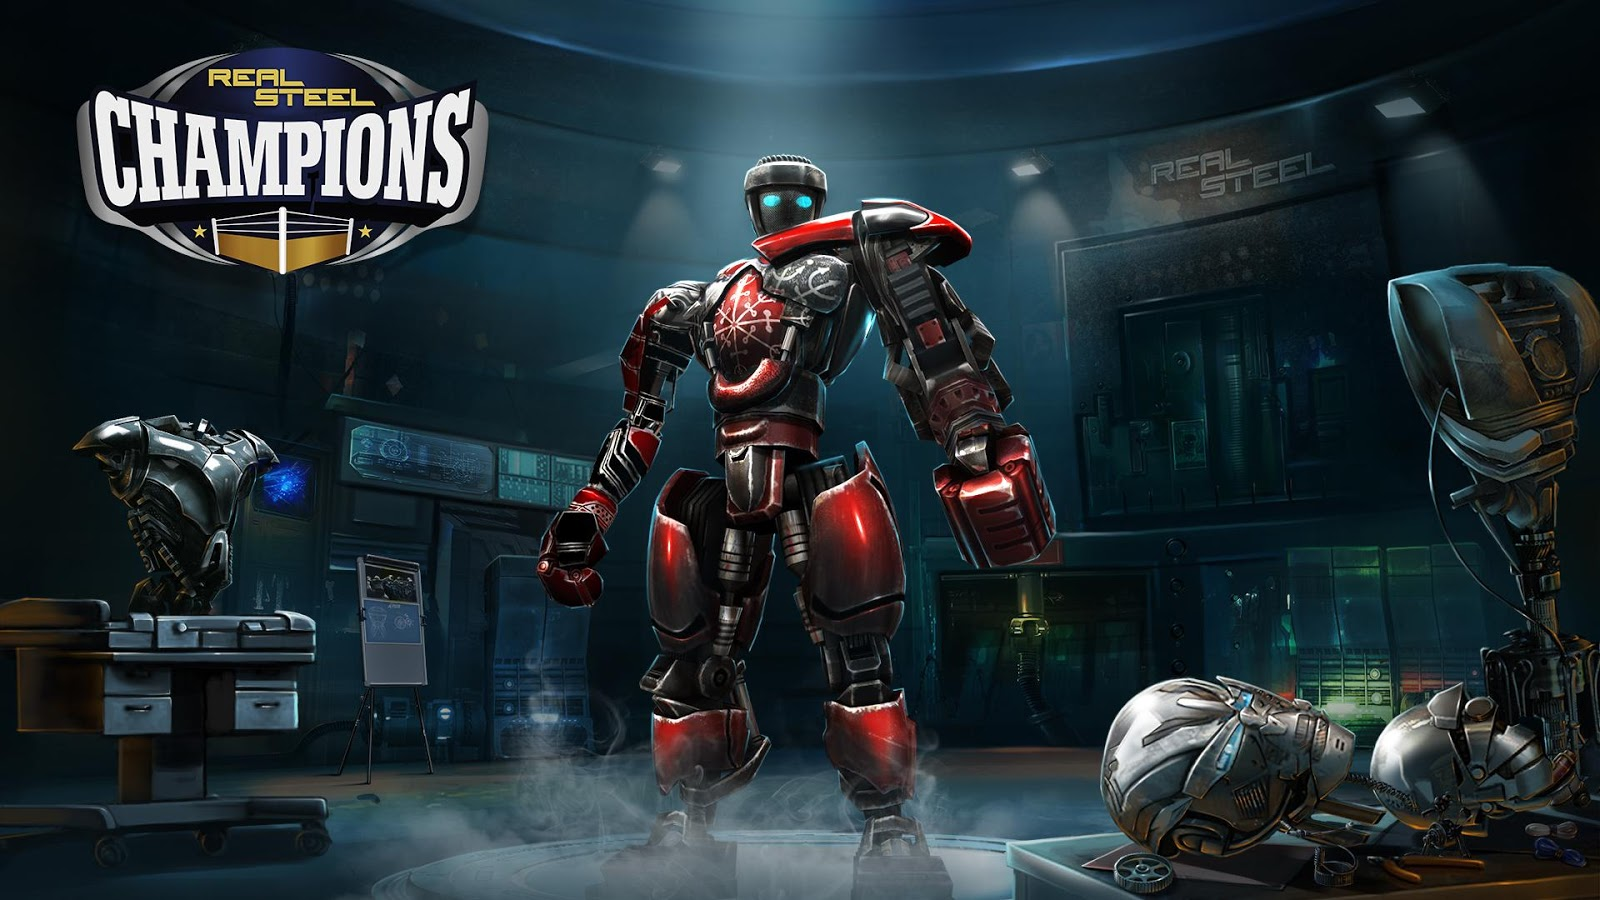 Real steel wrb game free download for android.